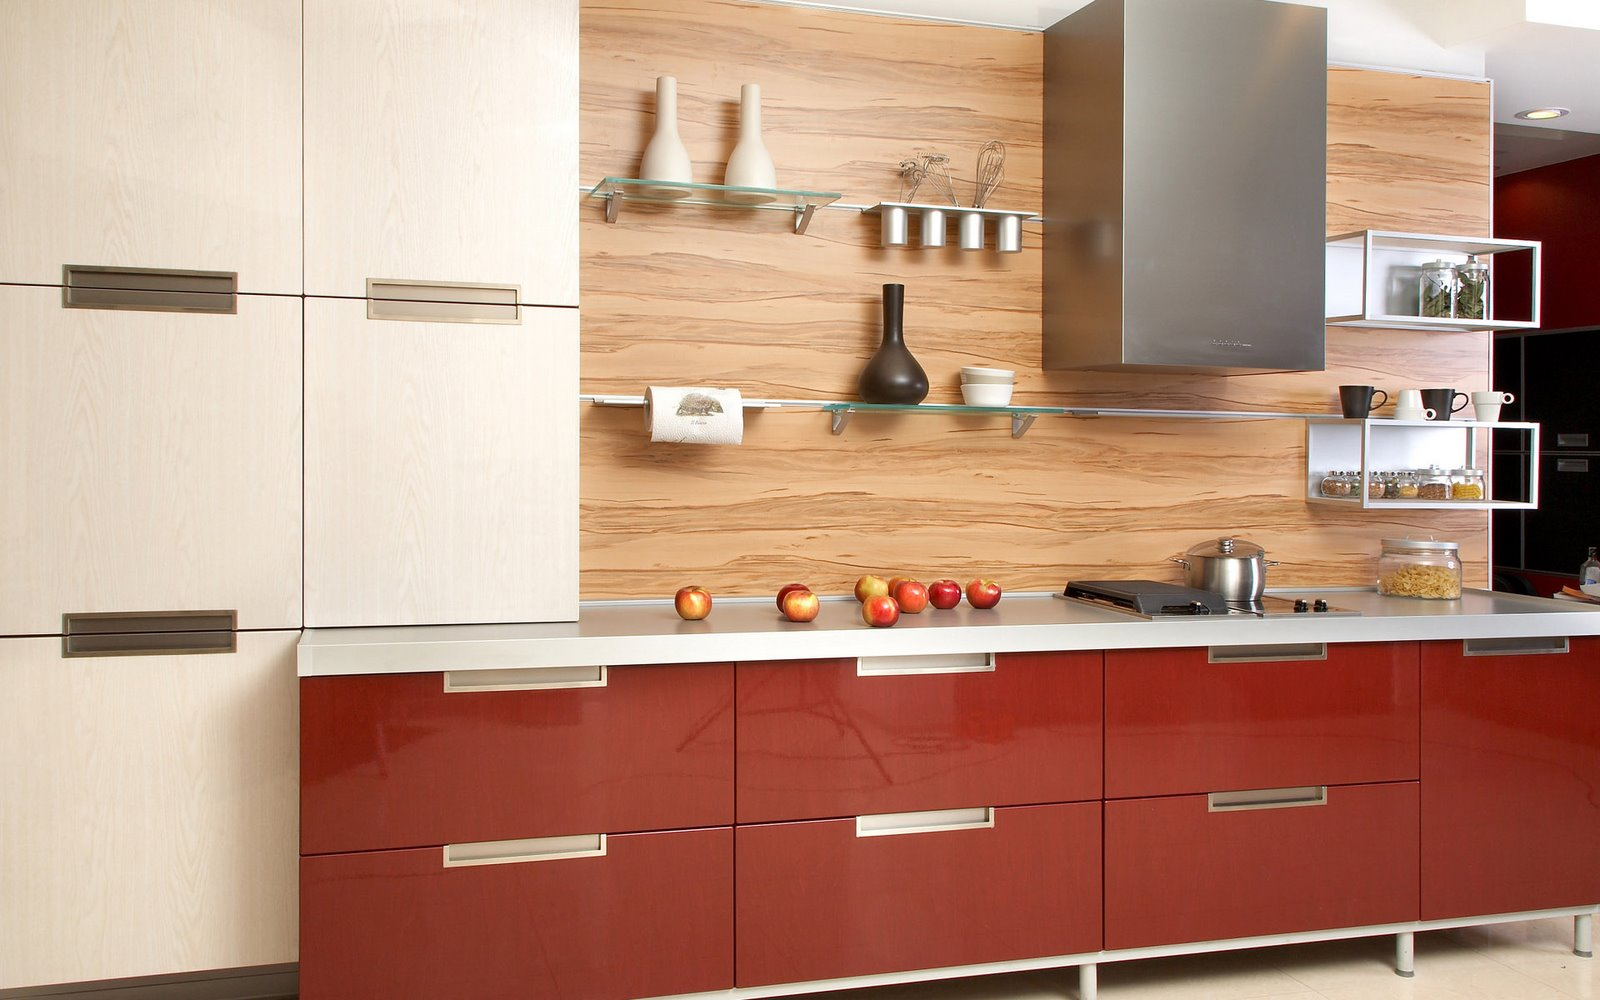 Modern wood kitchen design dream kitchens pinterest for Mordern kitchen designs